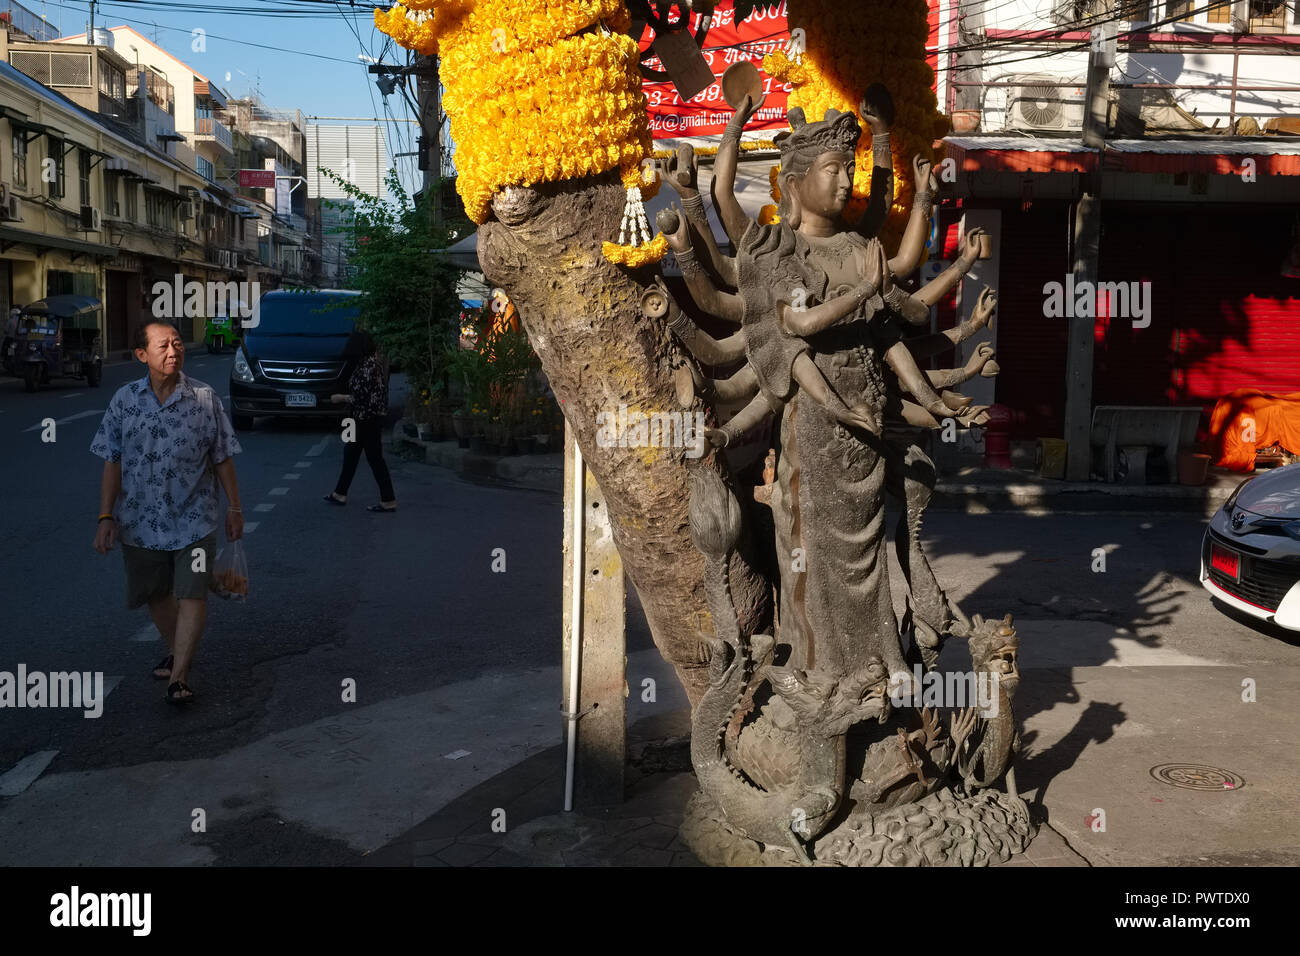 A man walking past the statue of a Taoist goddess in Bamrung Muang Rd., Bangkok, location of factories and shops for religious and devotional objects - Stock Image